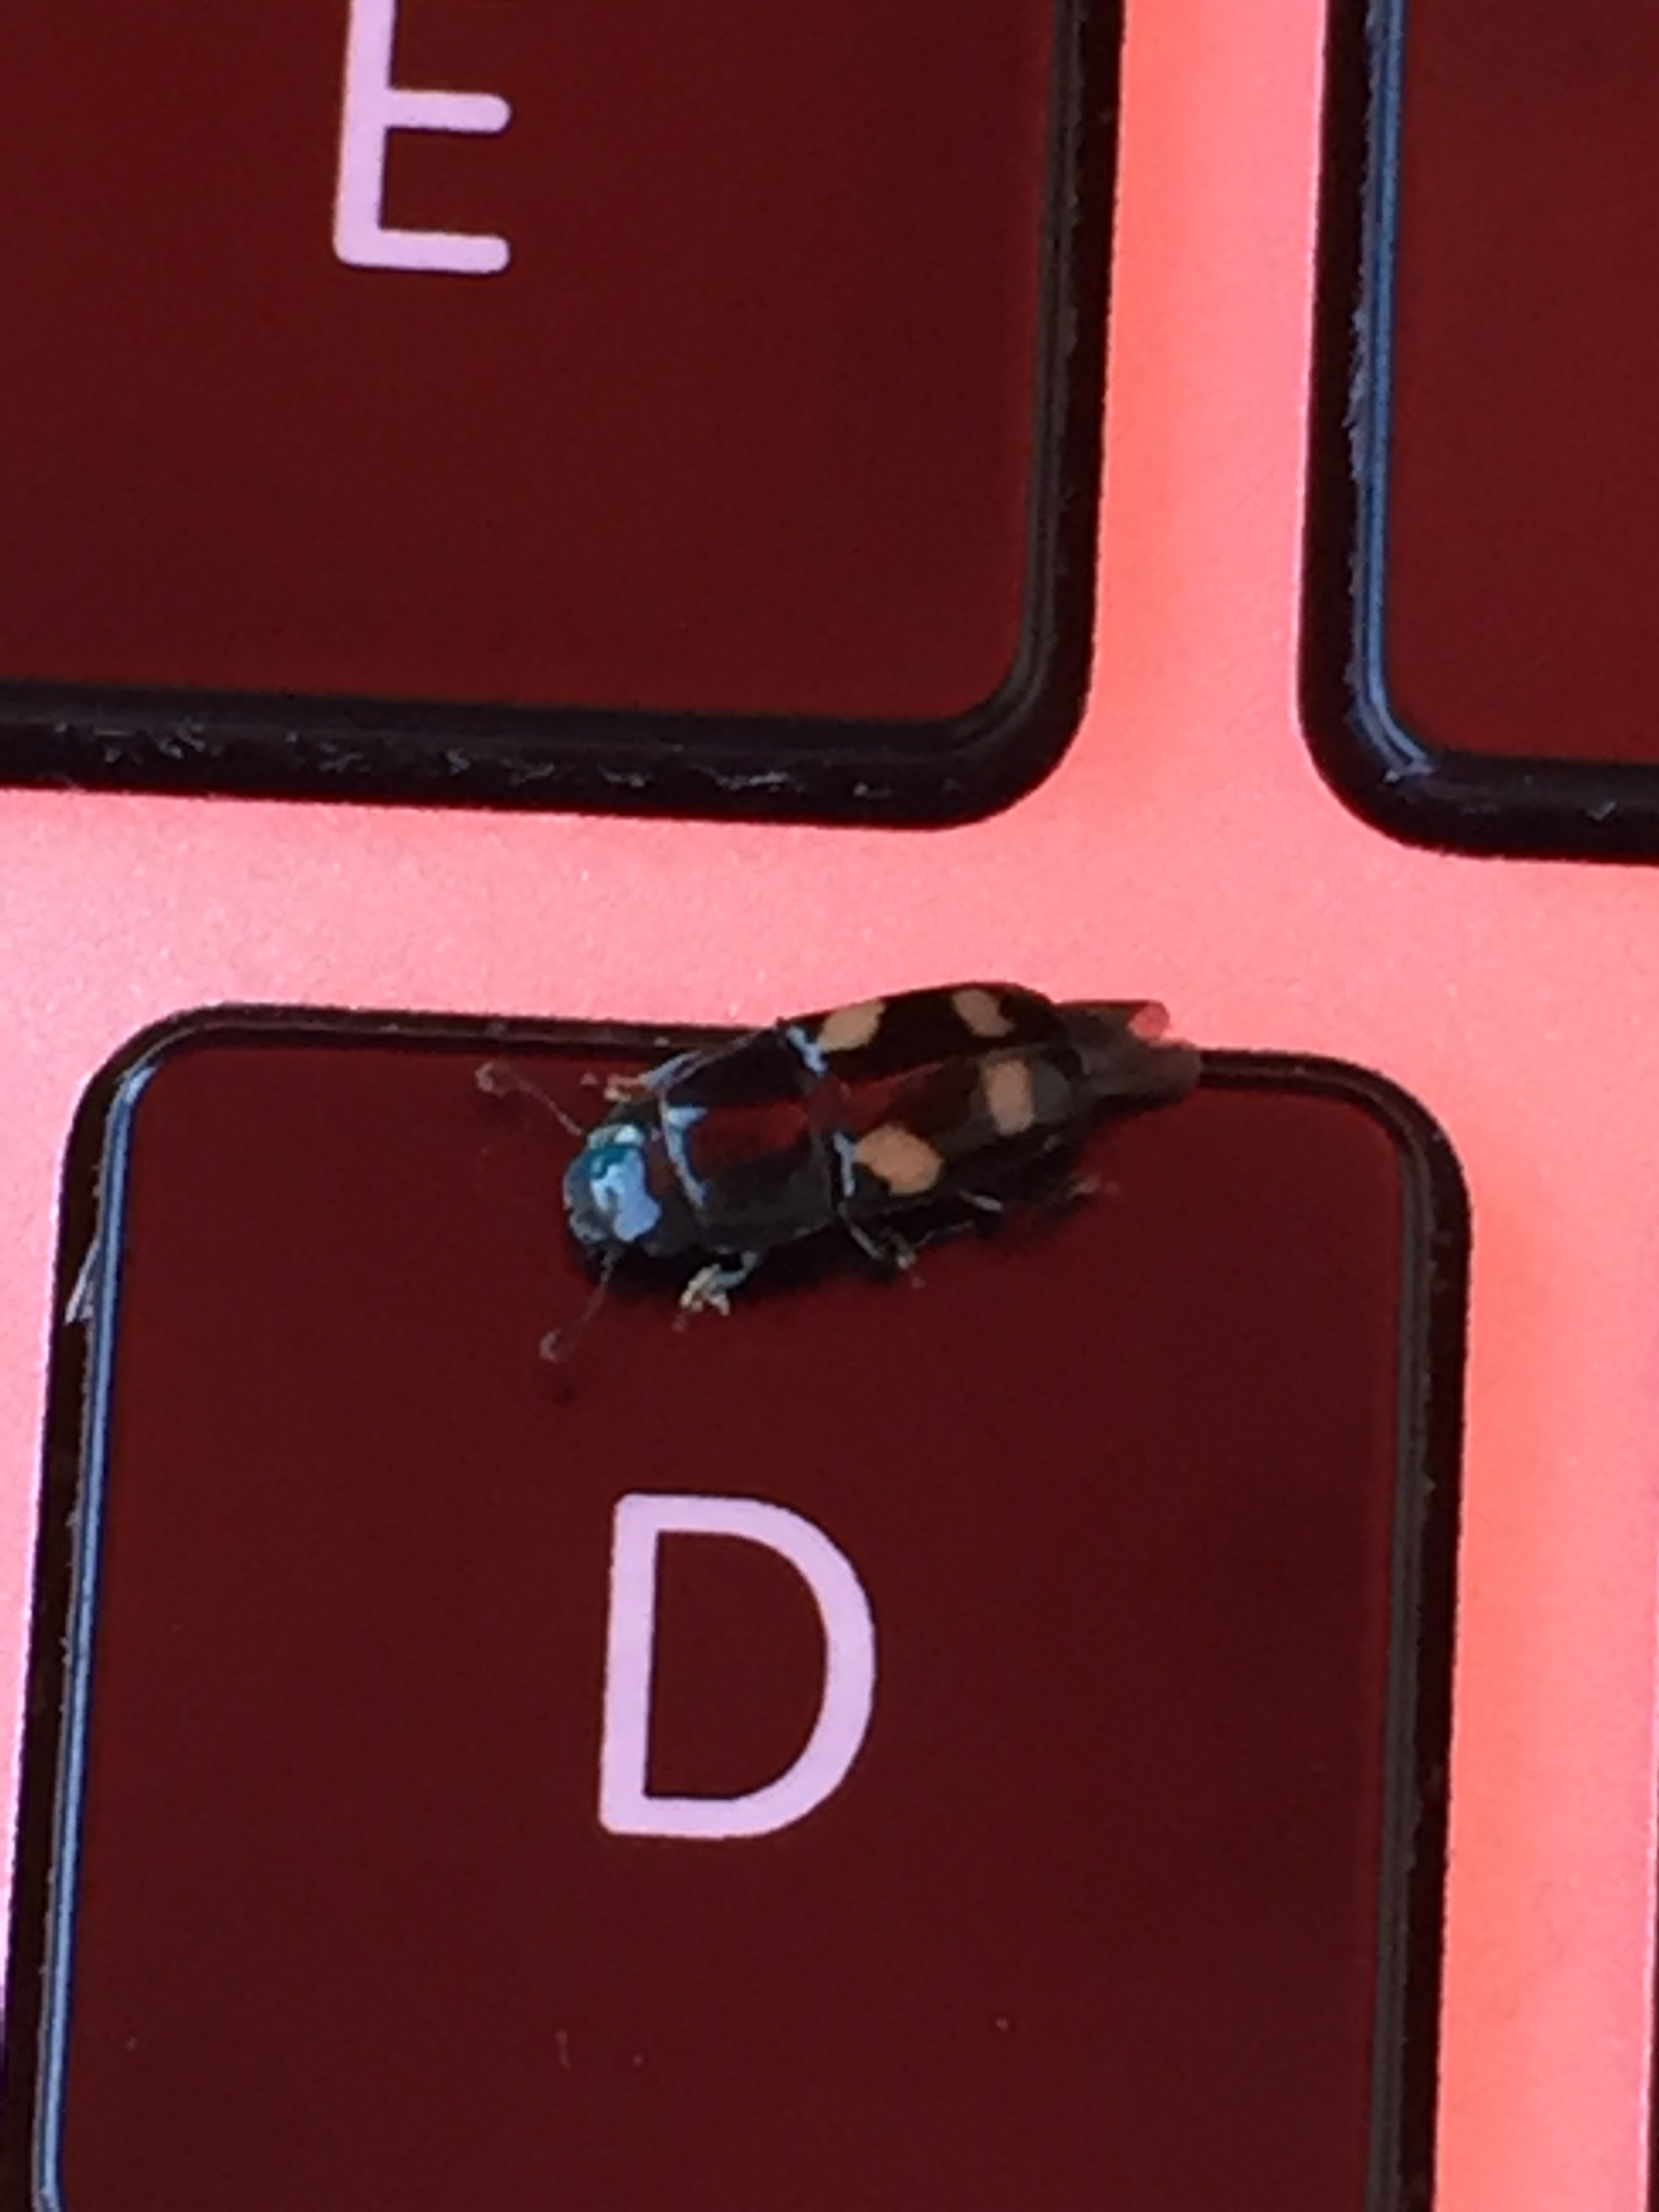 Picnic beetle on the D key